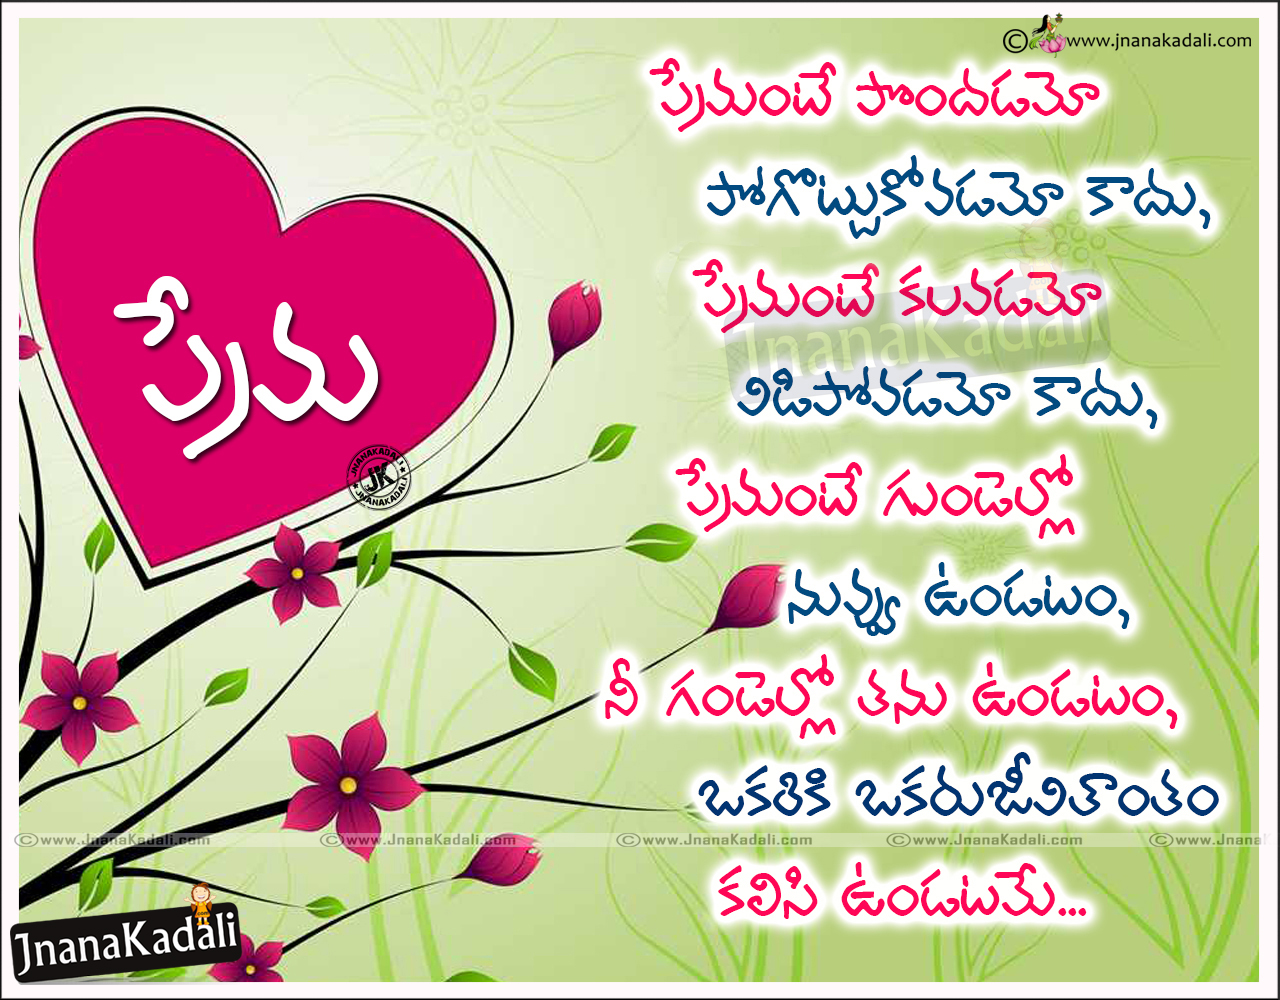 Meaning Of Love Quotes Beautiful Telugu Love Meaning Quotes Images  Jnana Kadali